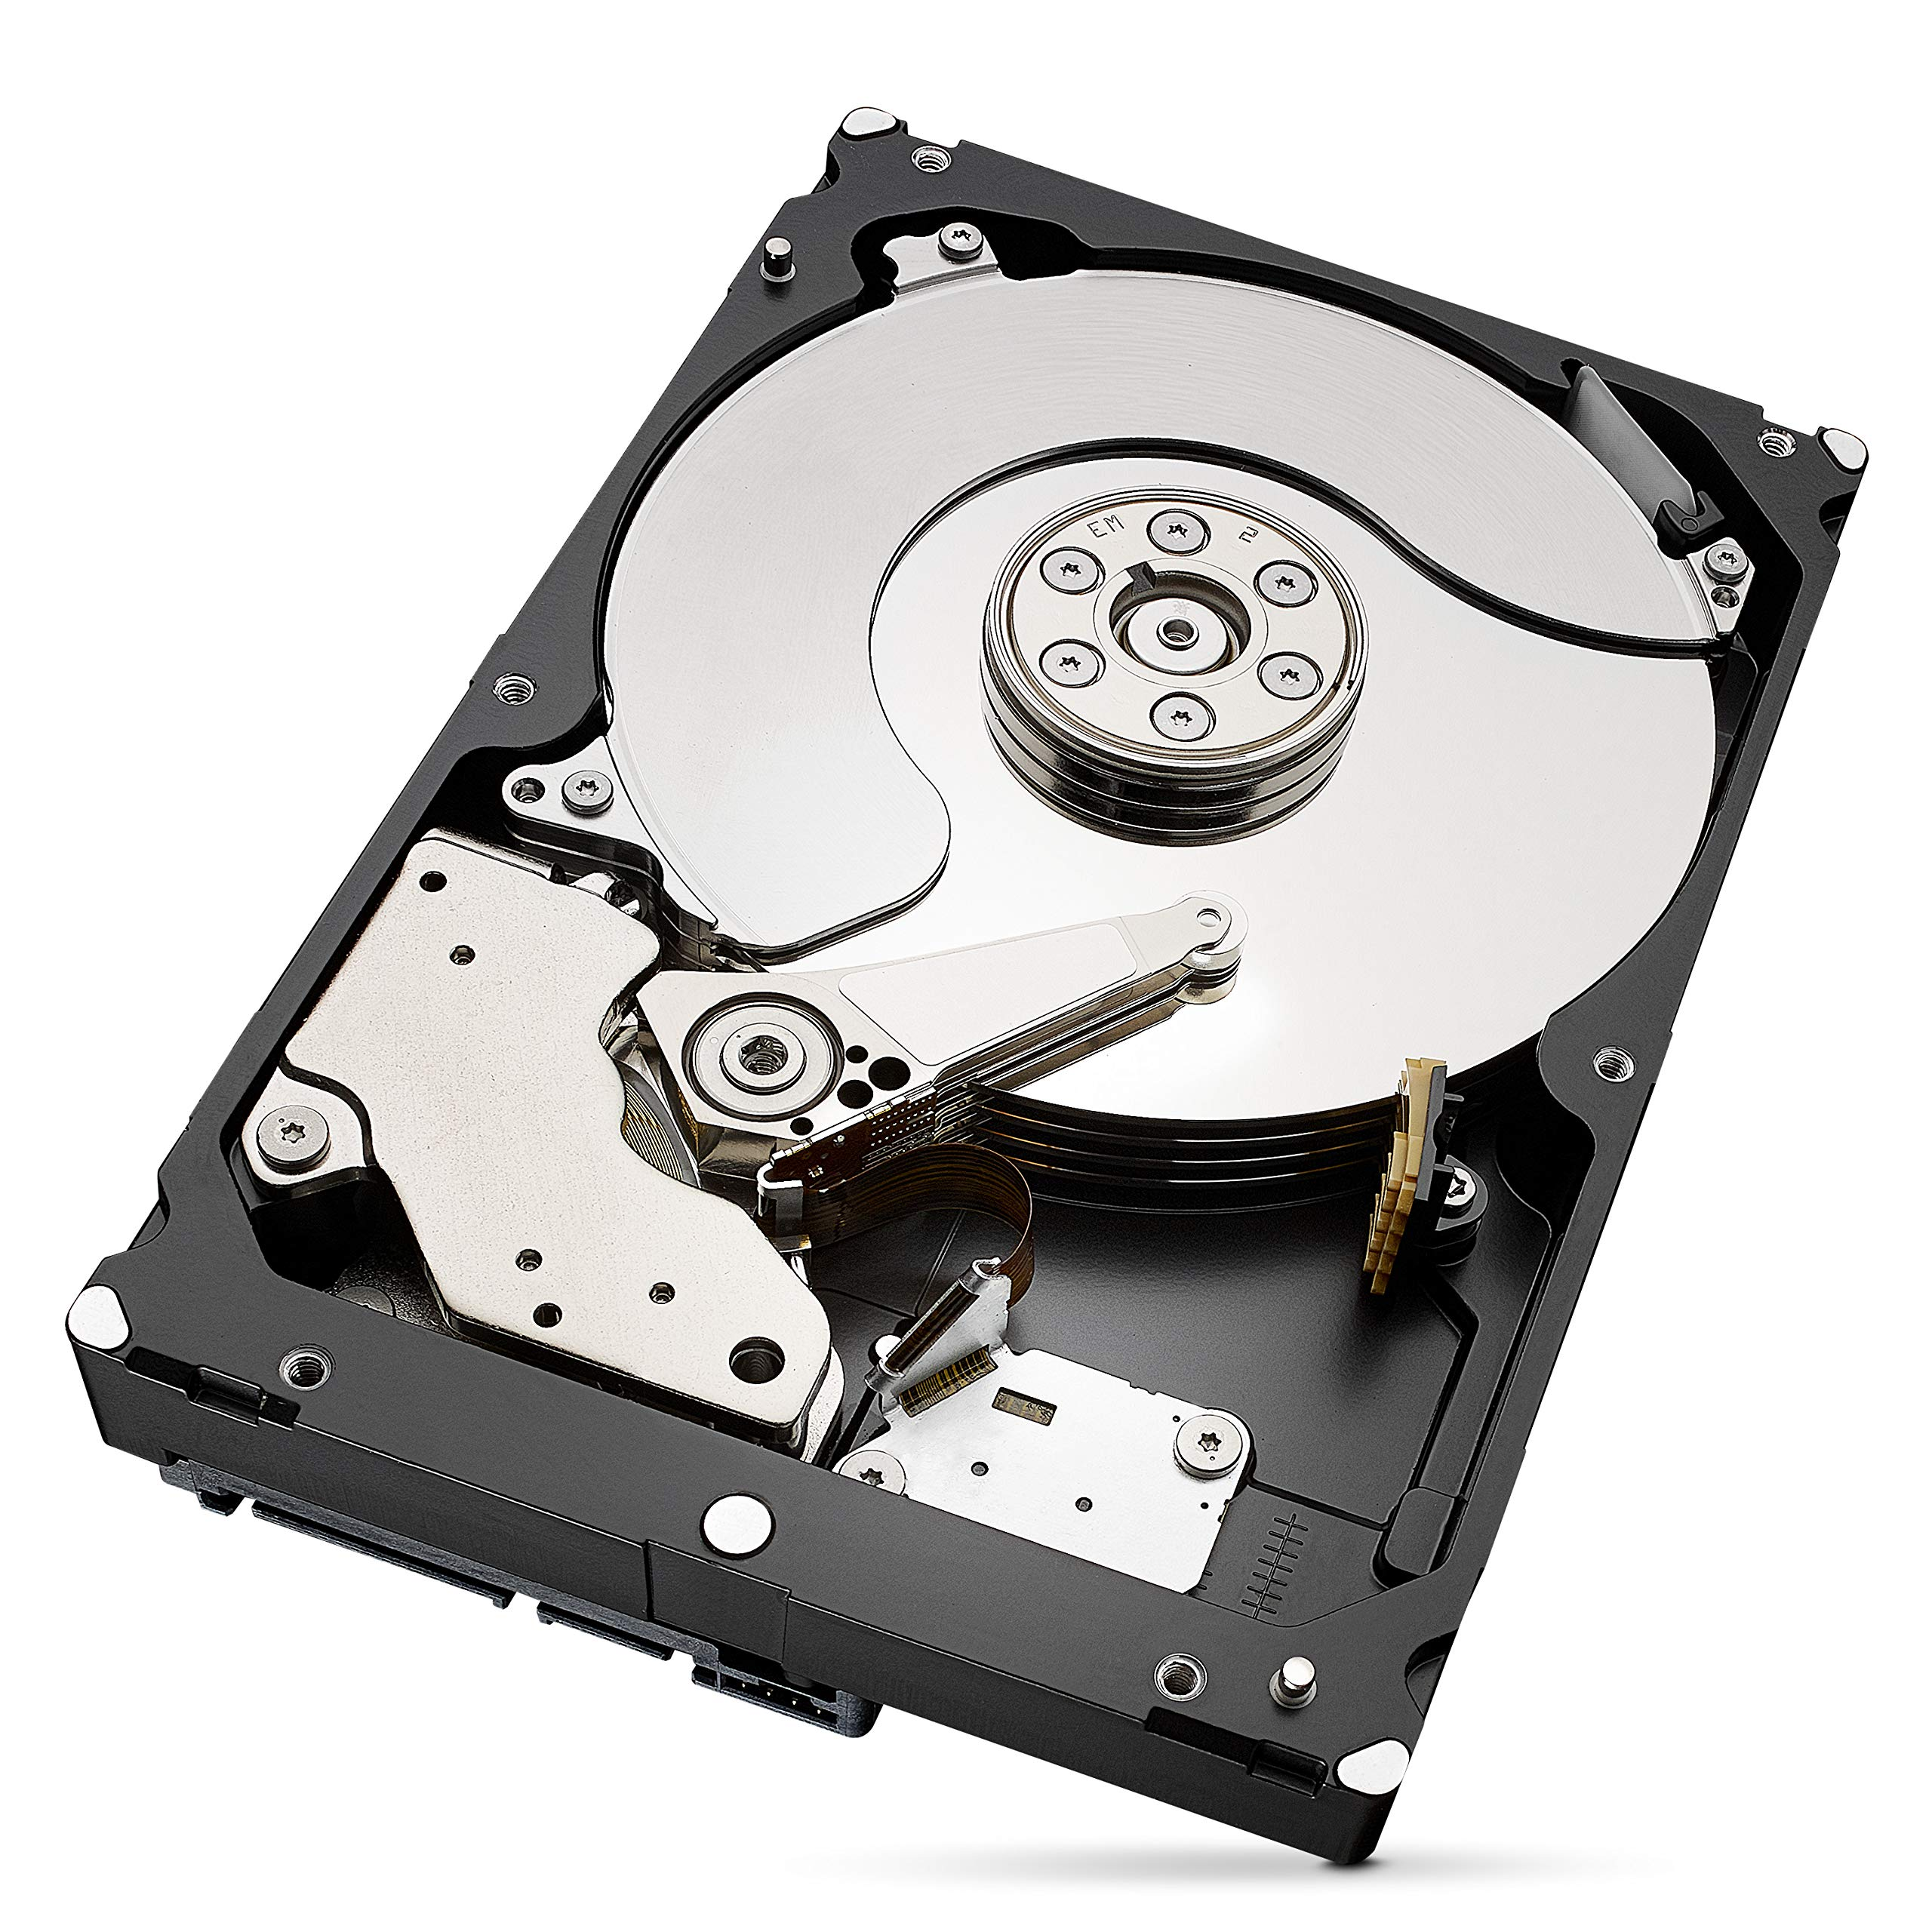 Seagate Ironwolf 6 TB NAS RAID Internal Hard Drive - 7,200 RPM SATA 6 Gb/s 3.5-inch - Frustration Free Packaging  (ST6000VN0033) by Seagate (Image #2)